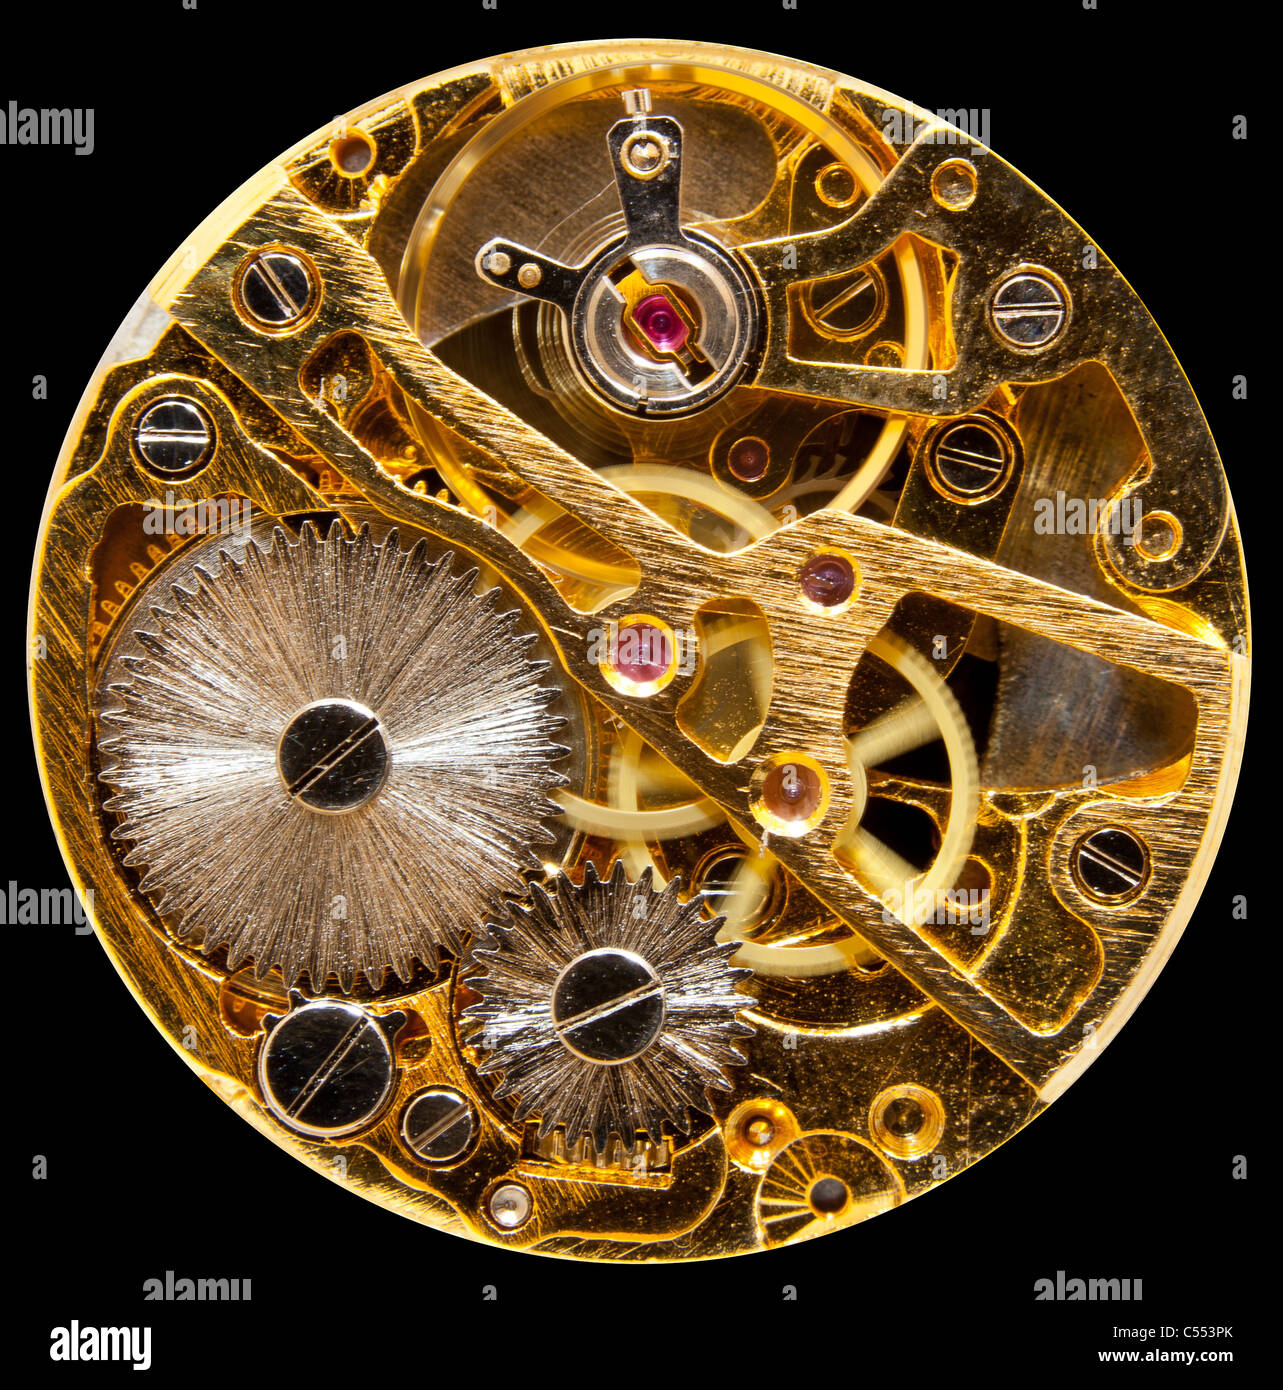 Macro shot of the interior of an old pocket watch with a mechanical movement - Stock Image